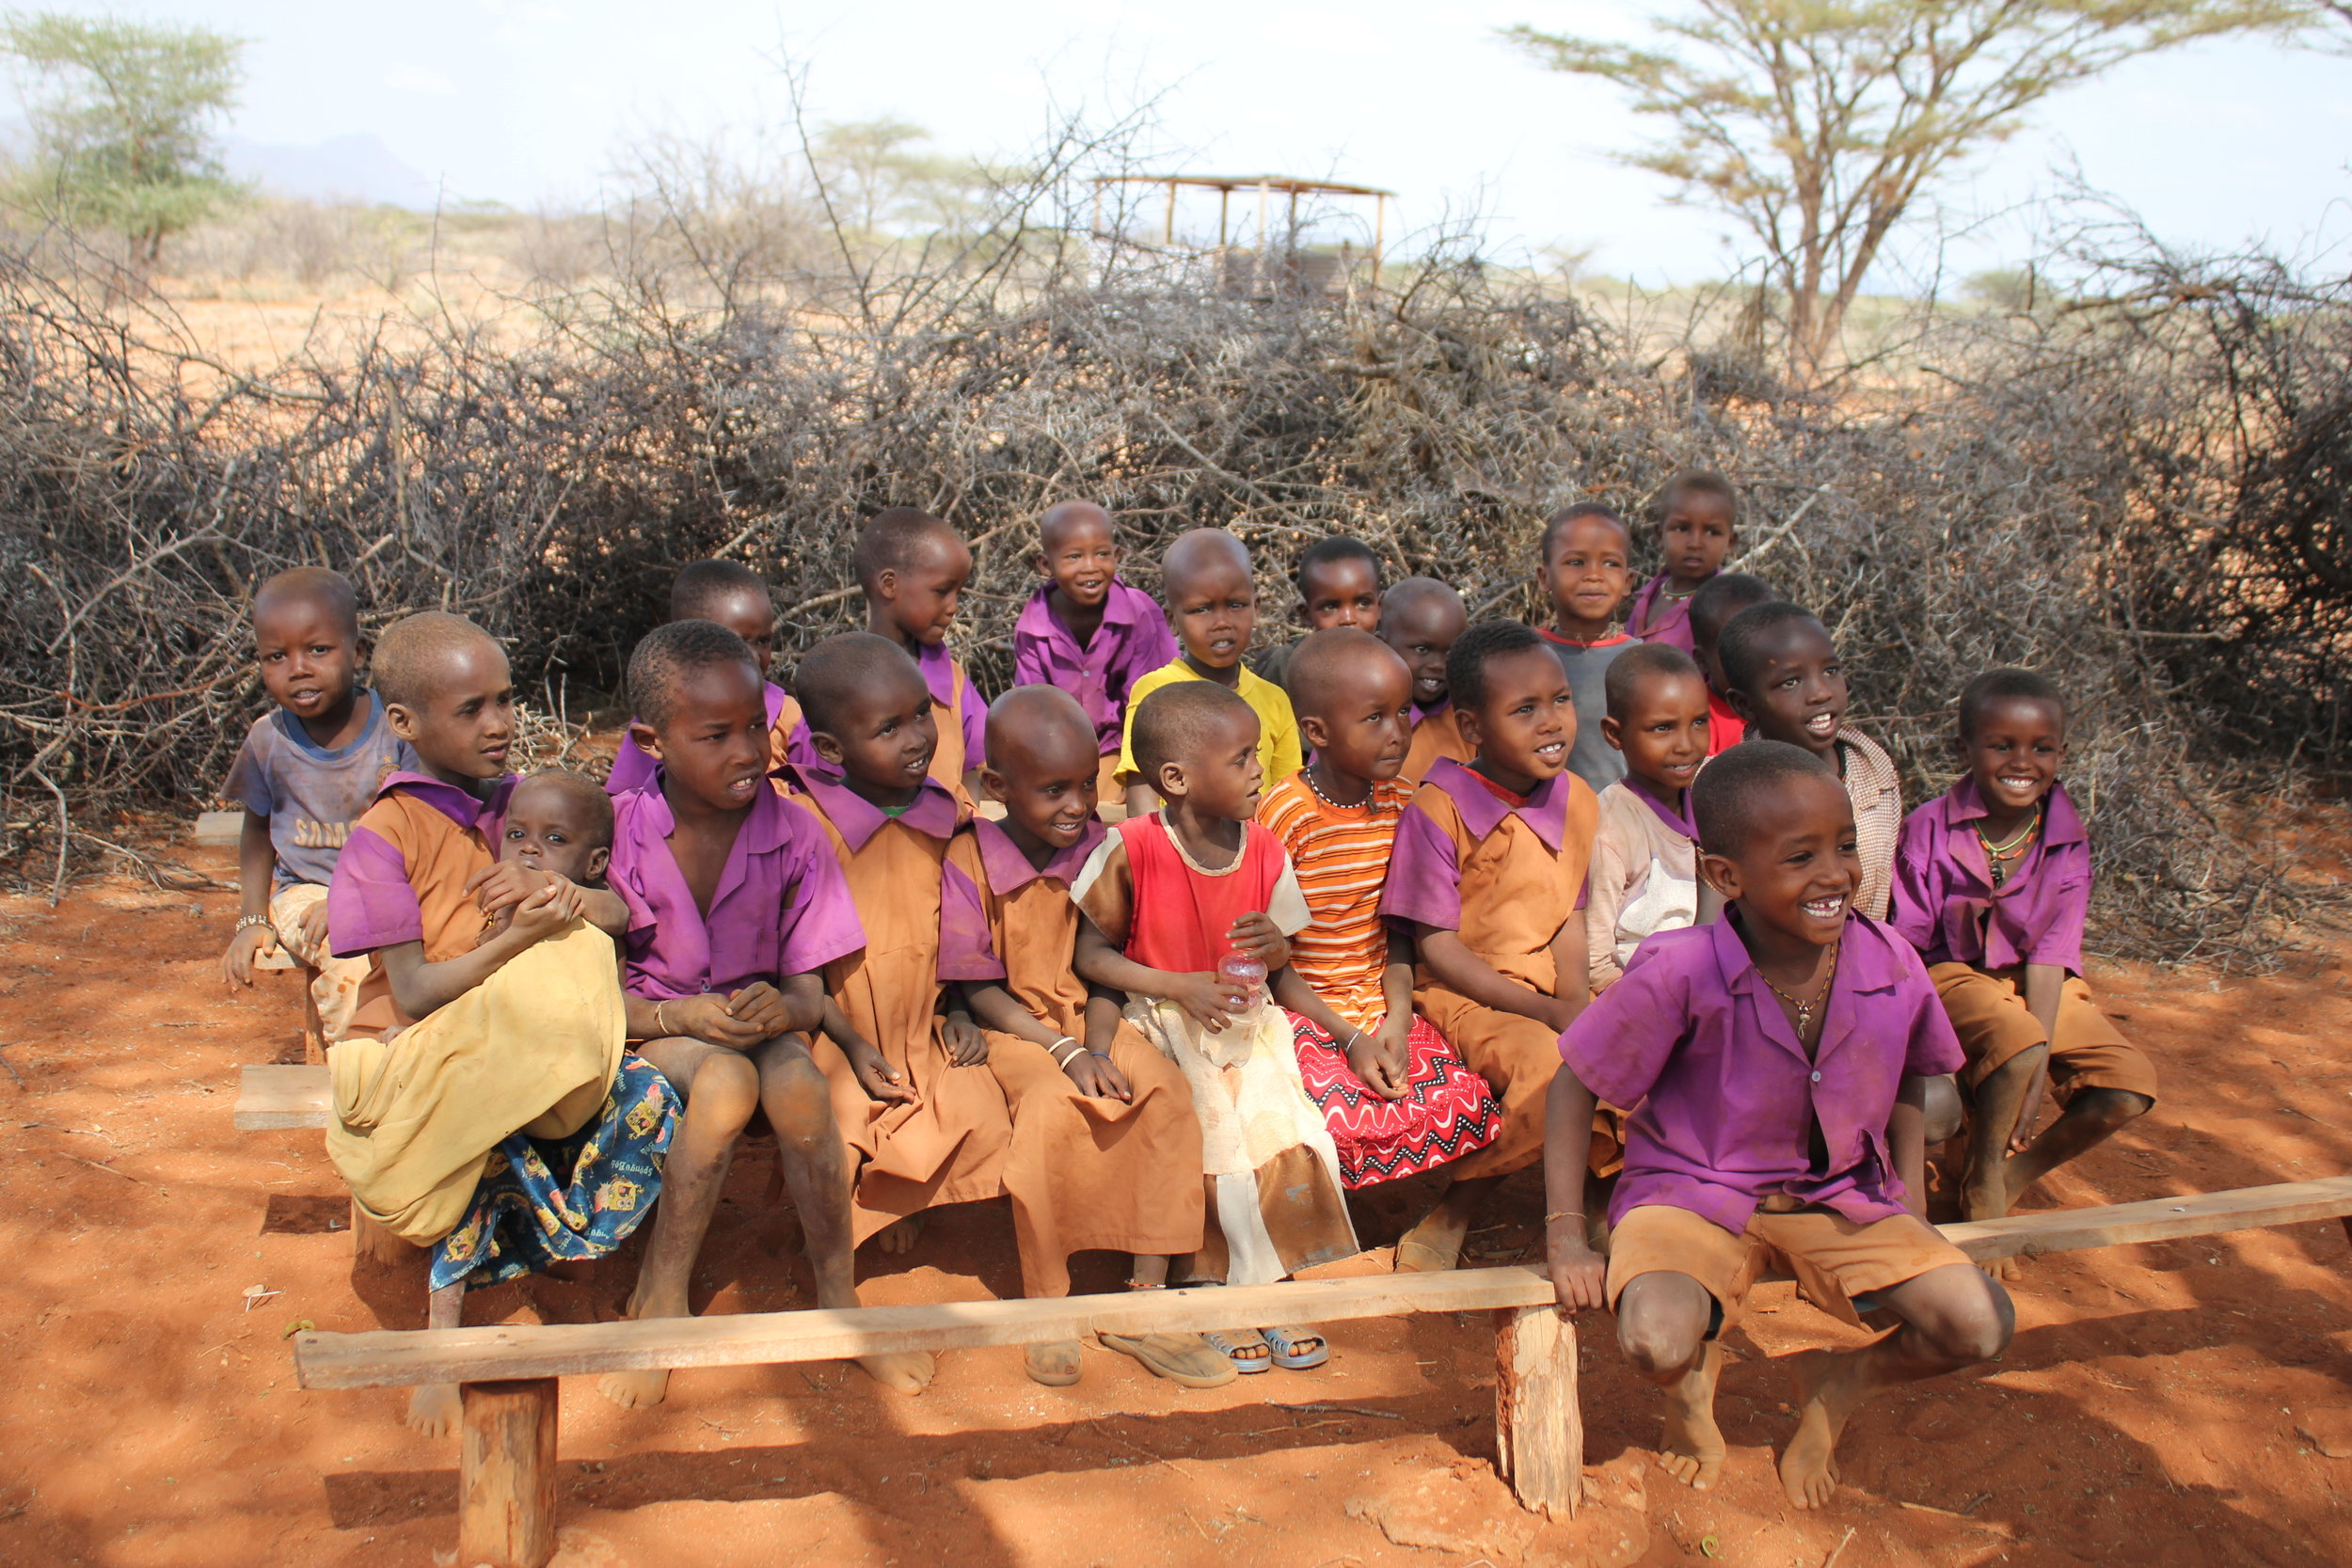 Children's Education, Water Access Samburu Kenya Africa